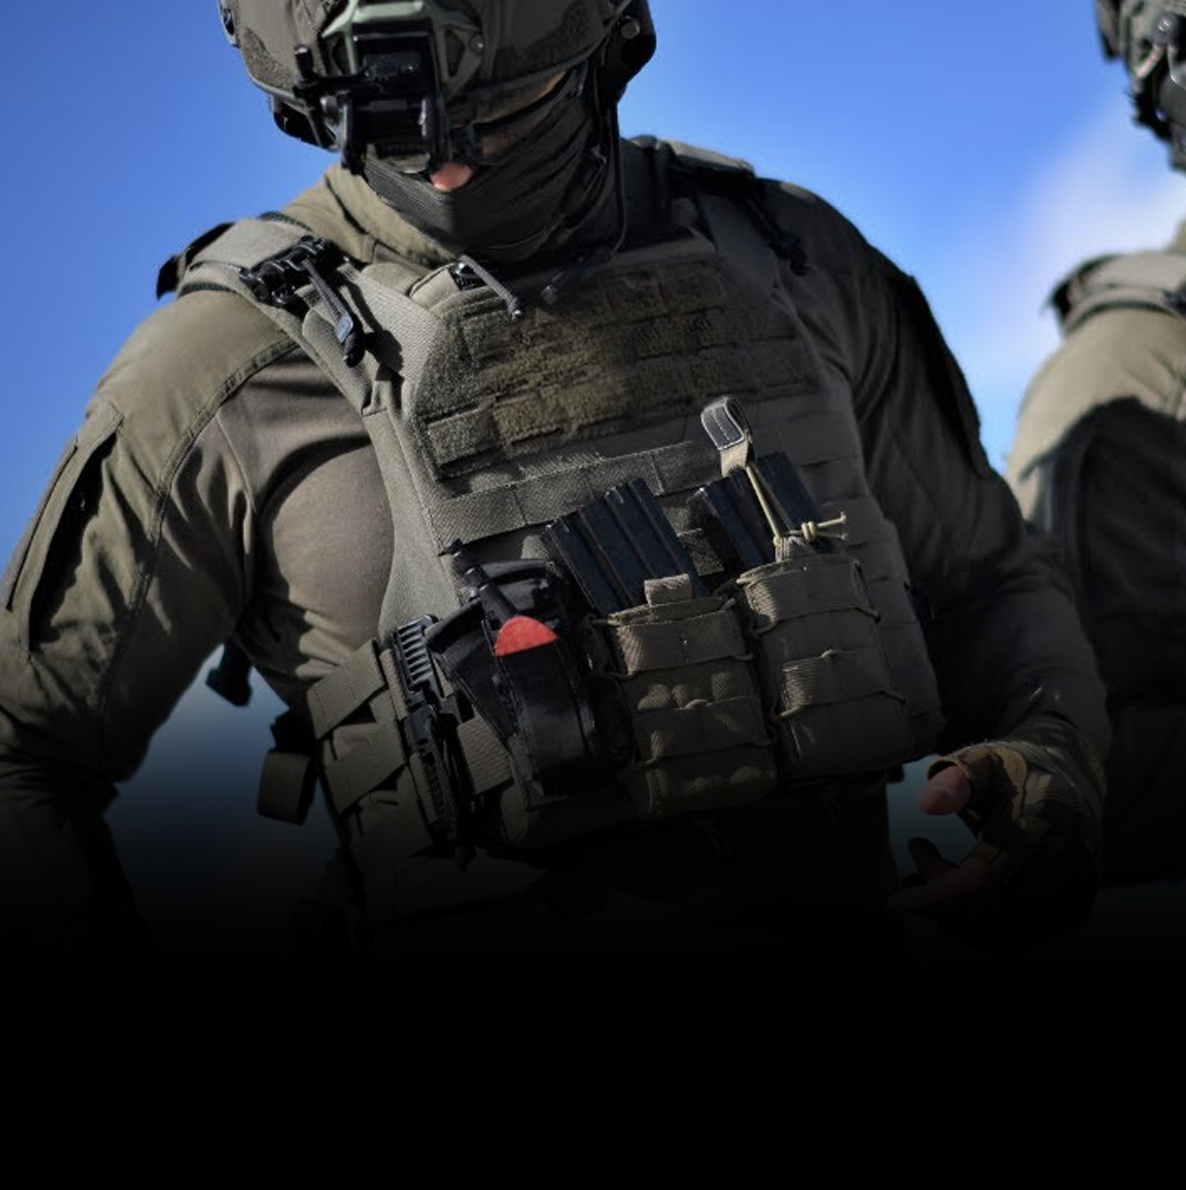 Shop Agilite Plate Carriers at uspatriottactical.com